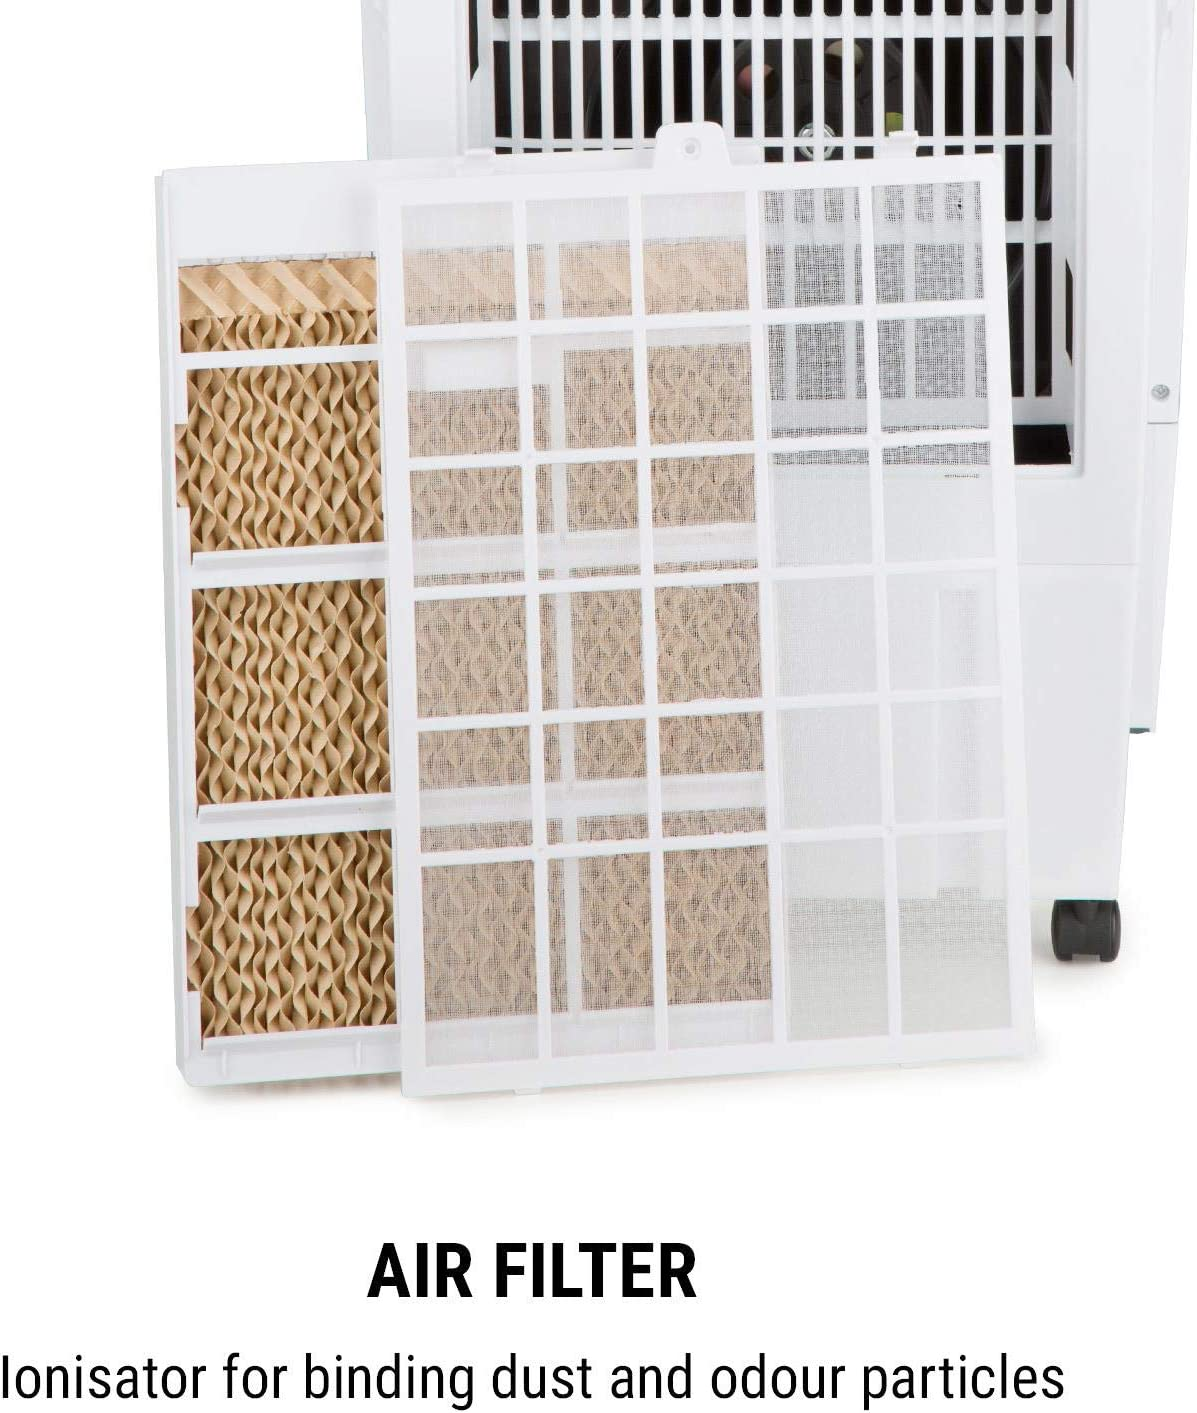 4-in-1: Air Cooler Ioniser OneConcept Kingcool Fan Quiet Operation Water Tank: 8 Litres Power: 95 Watts Mobile DarkGrey Air Flow: 2340 m/³ // h Humidifier Air Purifier Oscillation